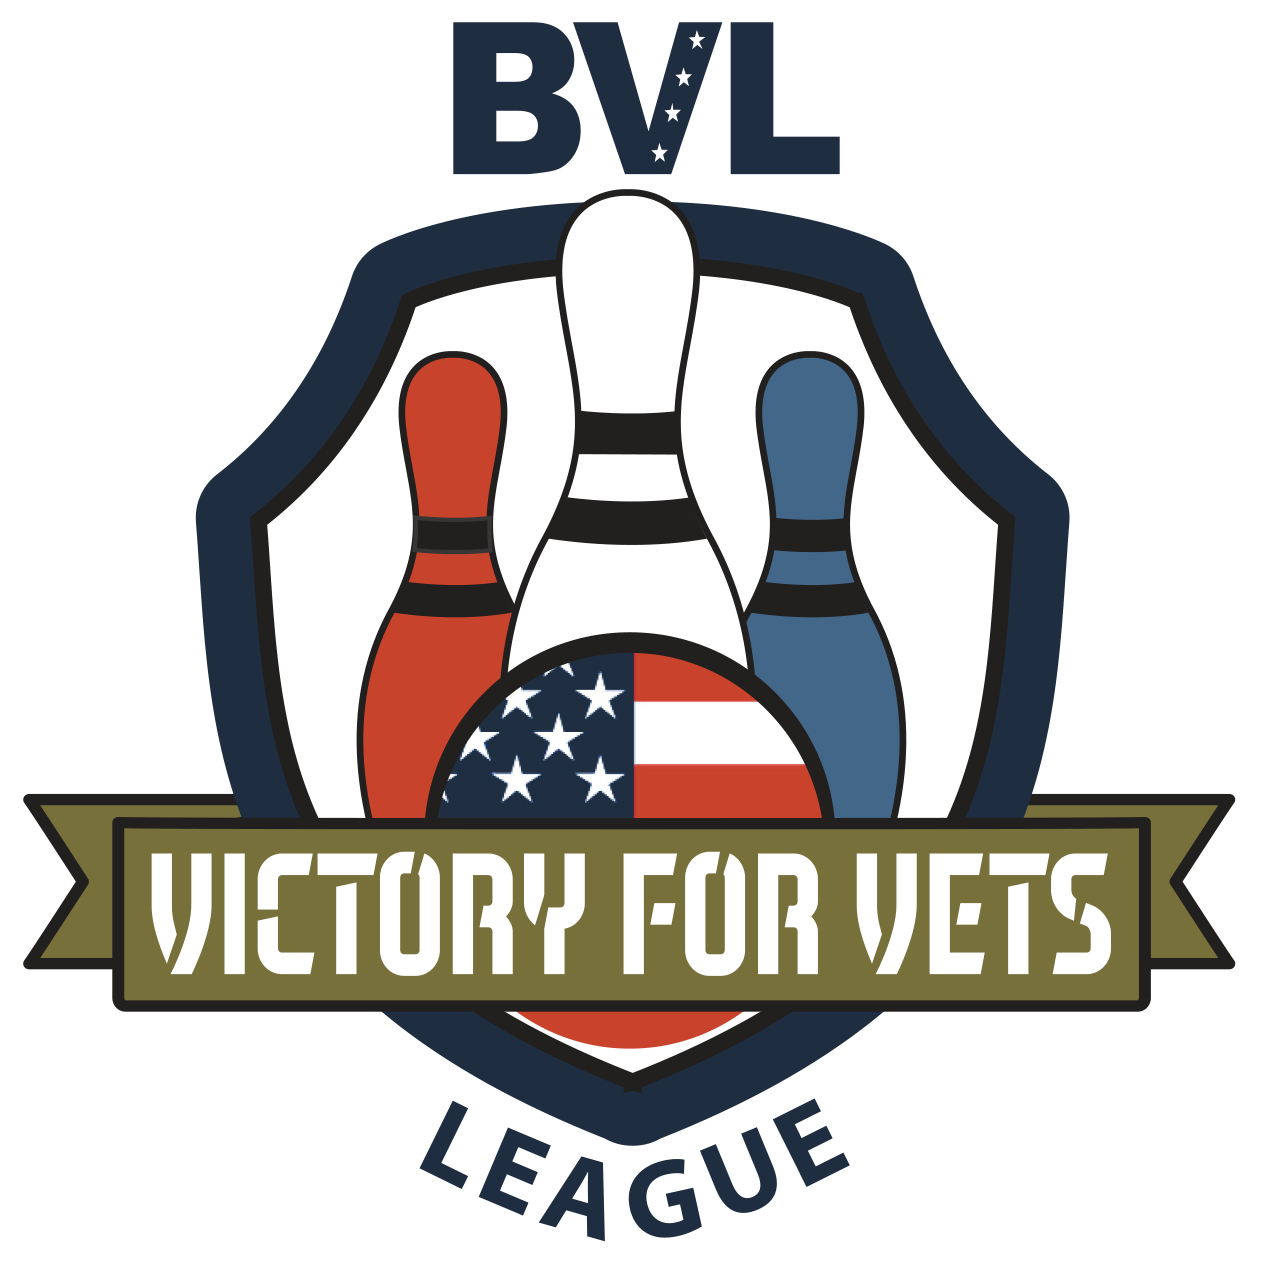 Victory for Vets_logo only_2020